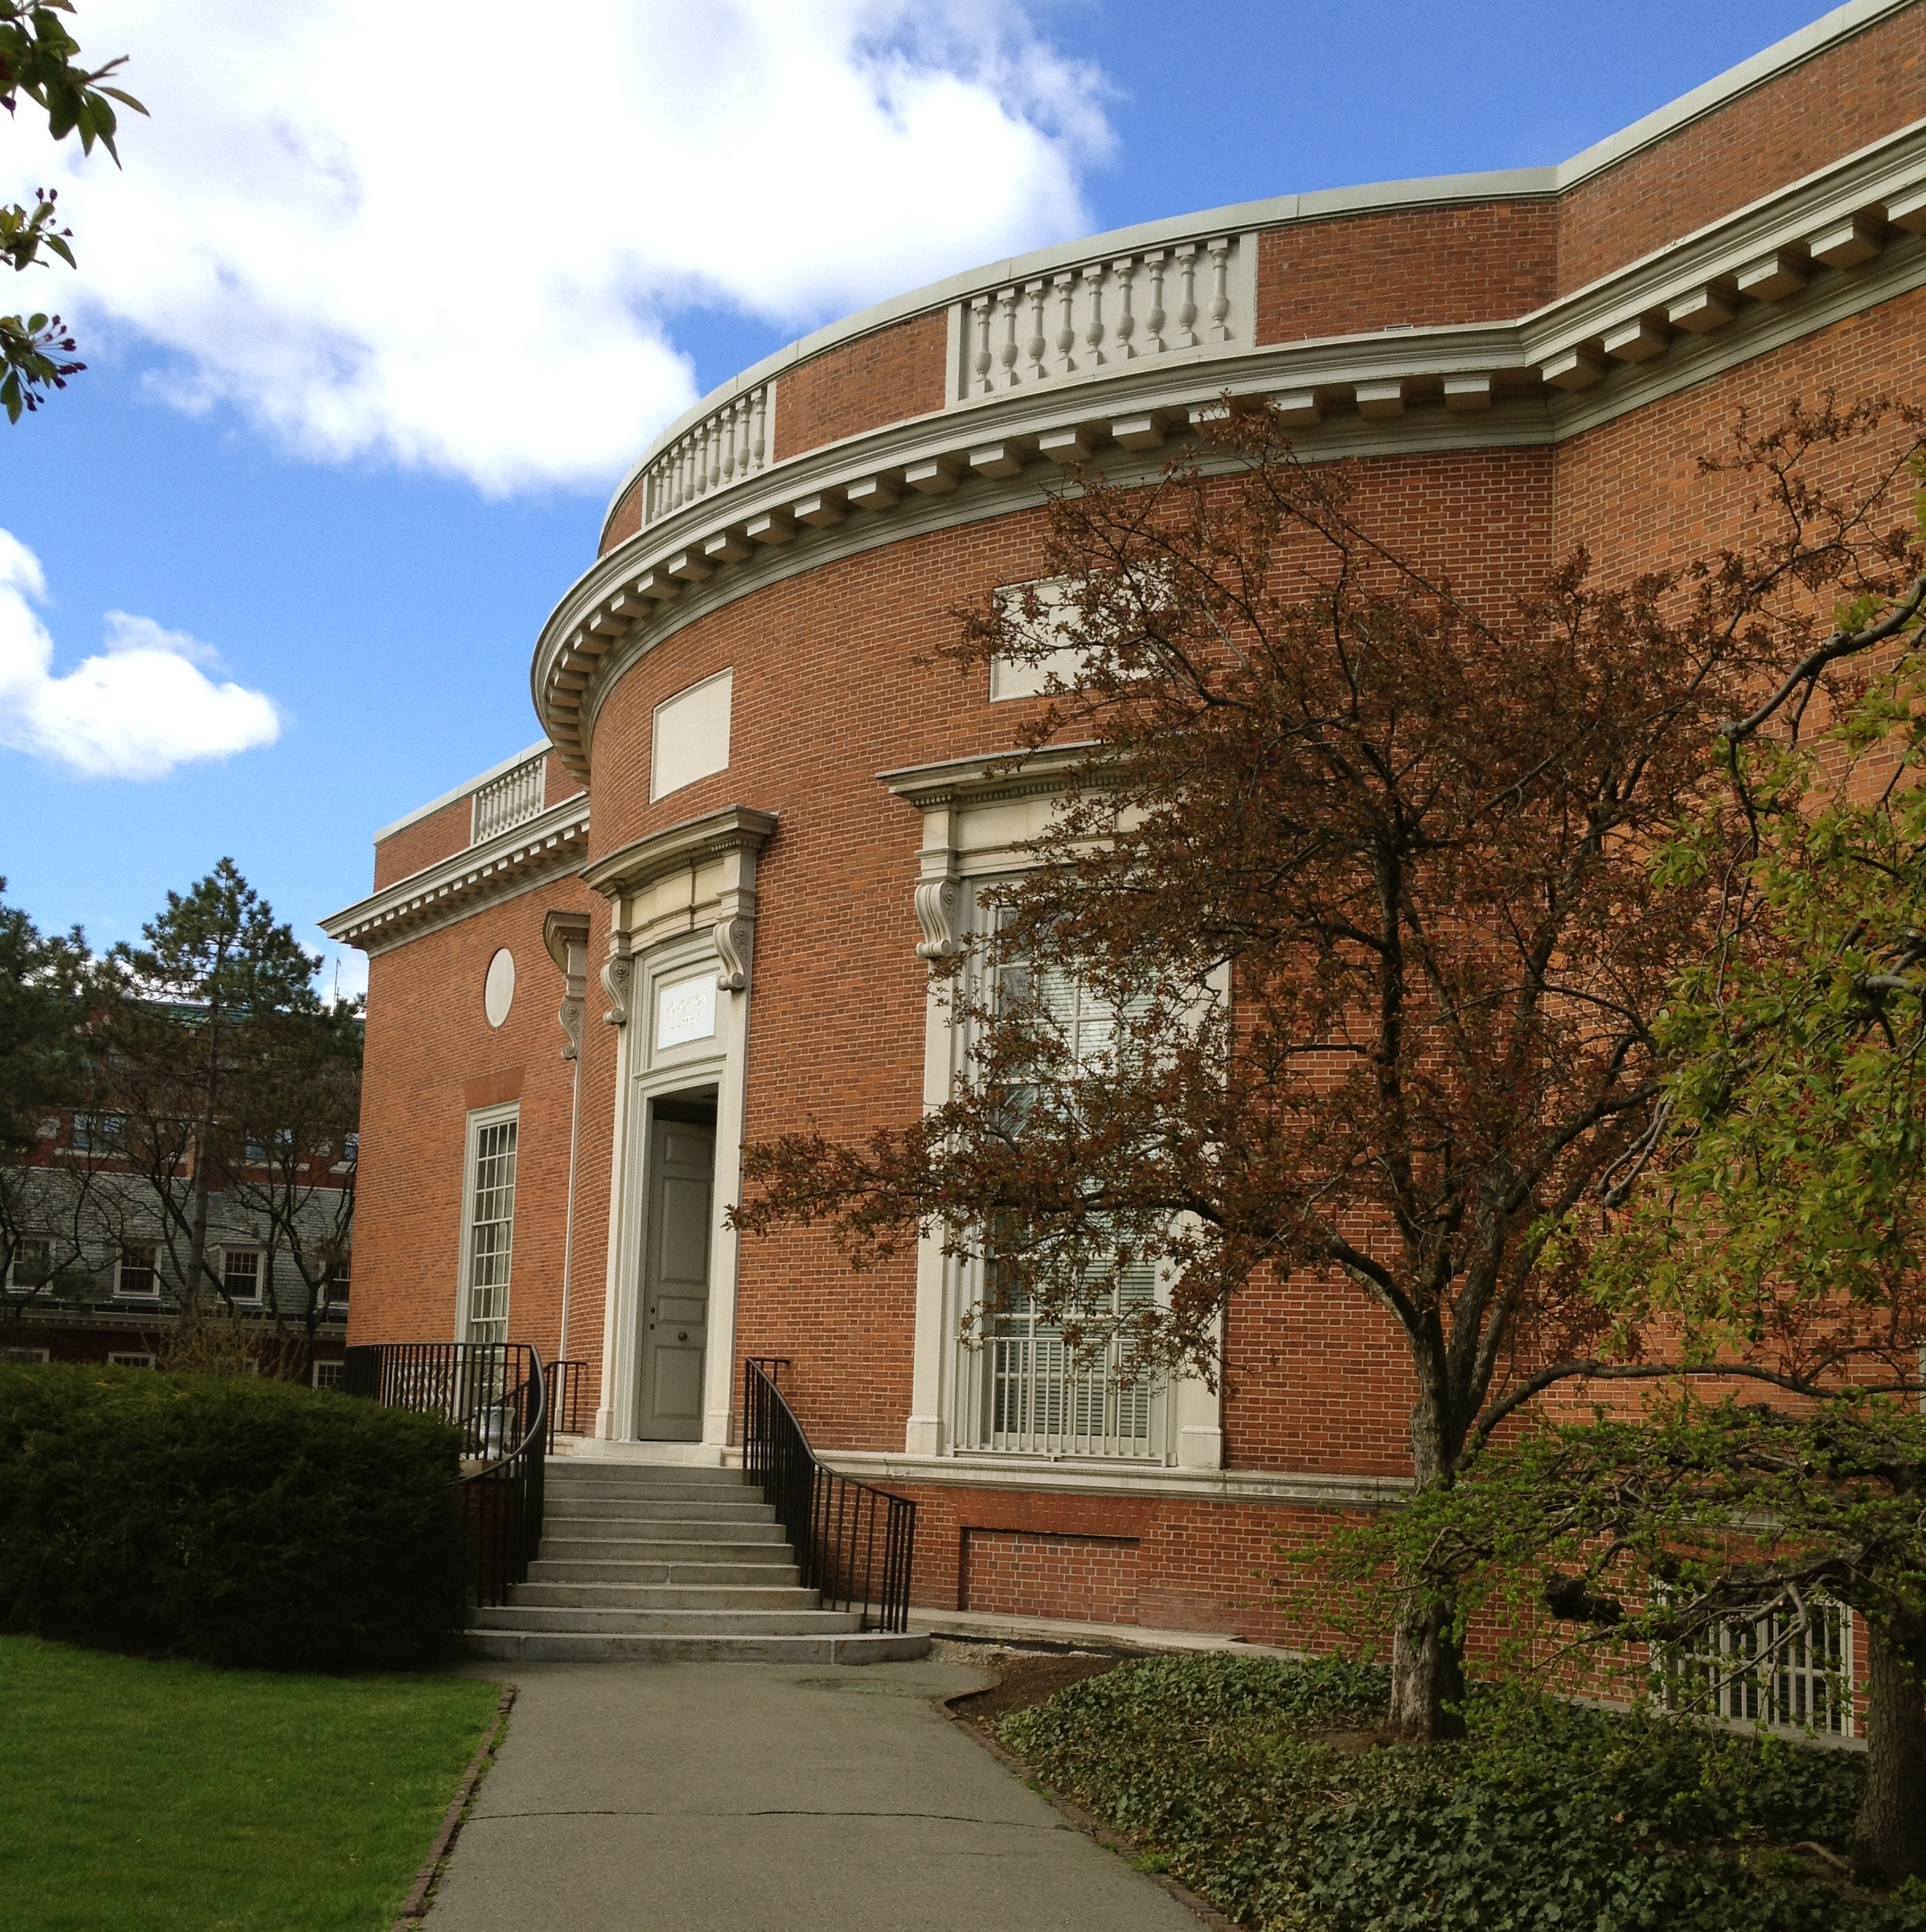 Houghton Library. Photo credit: C. K. Ash